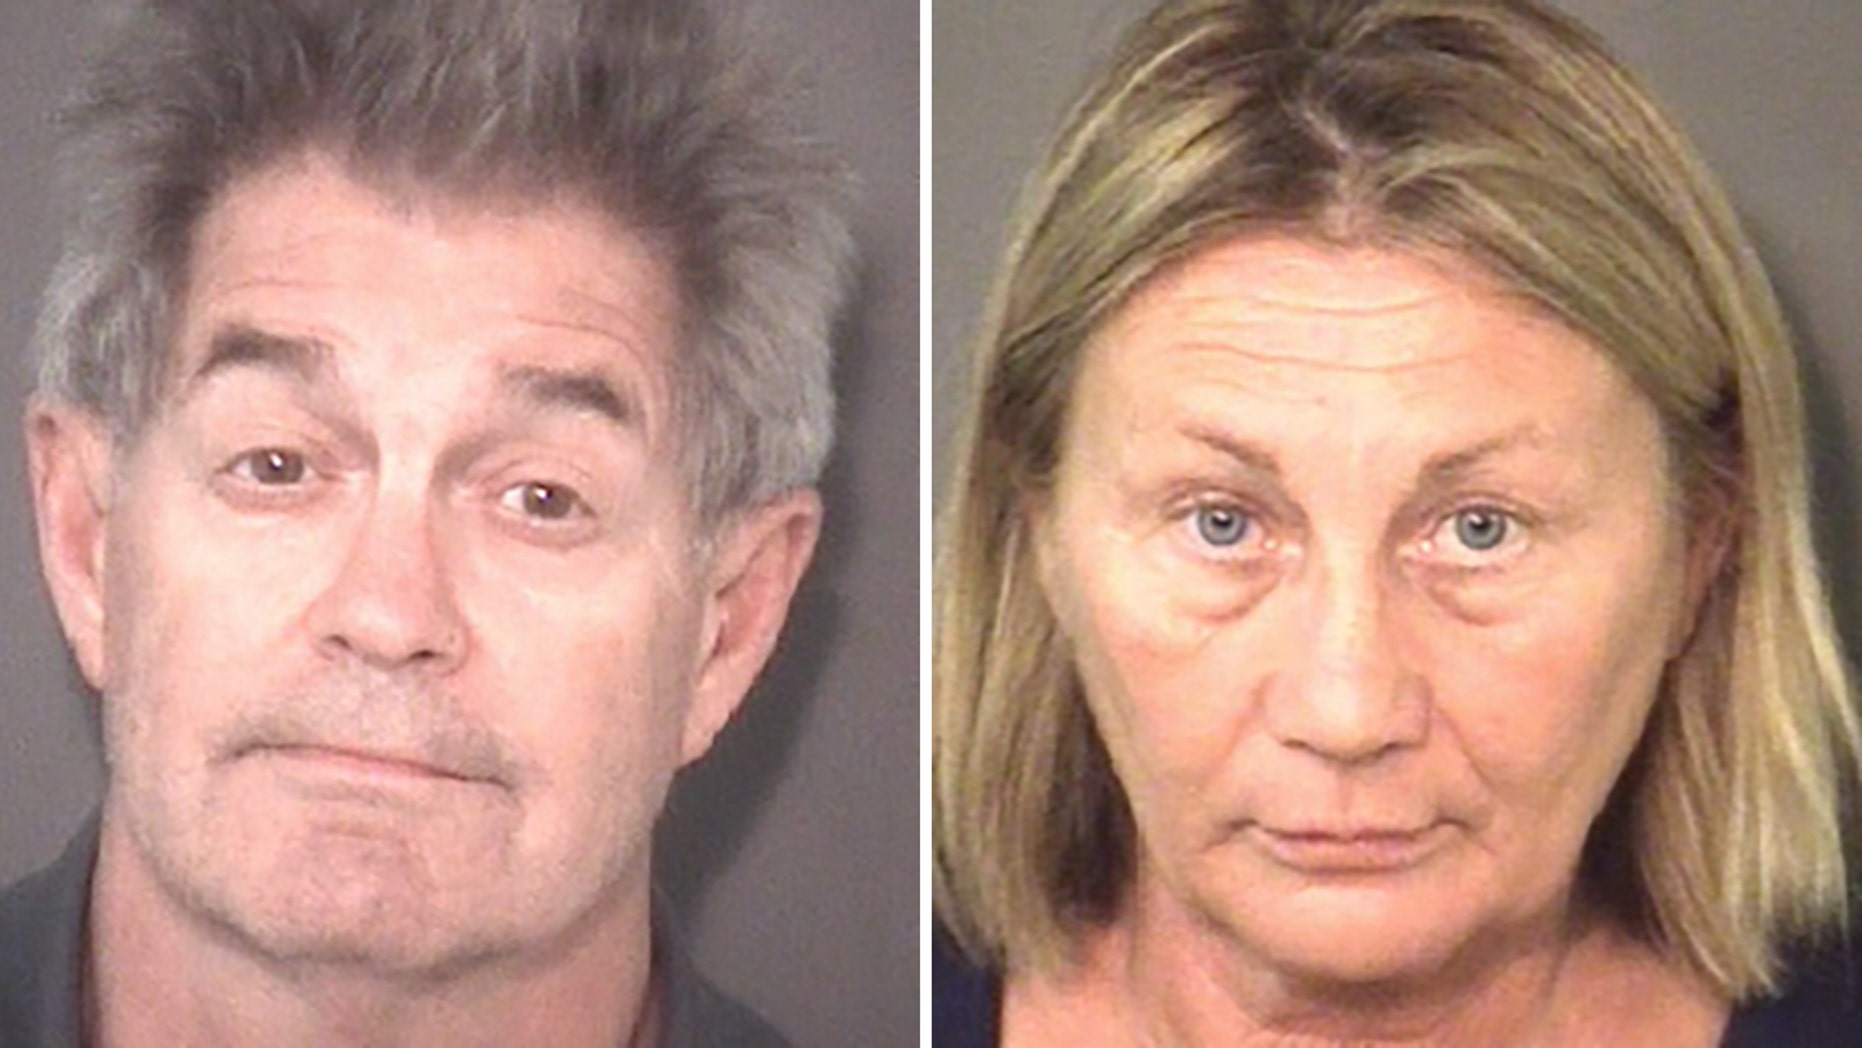 Tunis and Georganne Selby are charged with scamming thousands of dollars from families looking to buy monuments for their deceased loved ones.